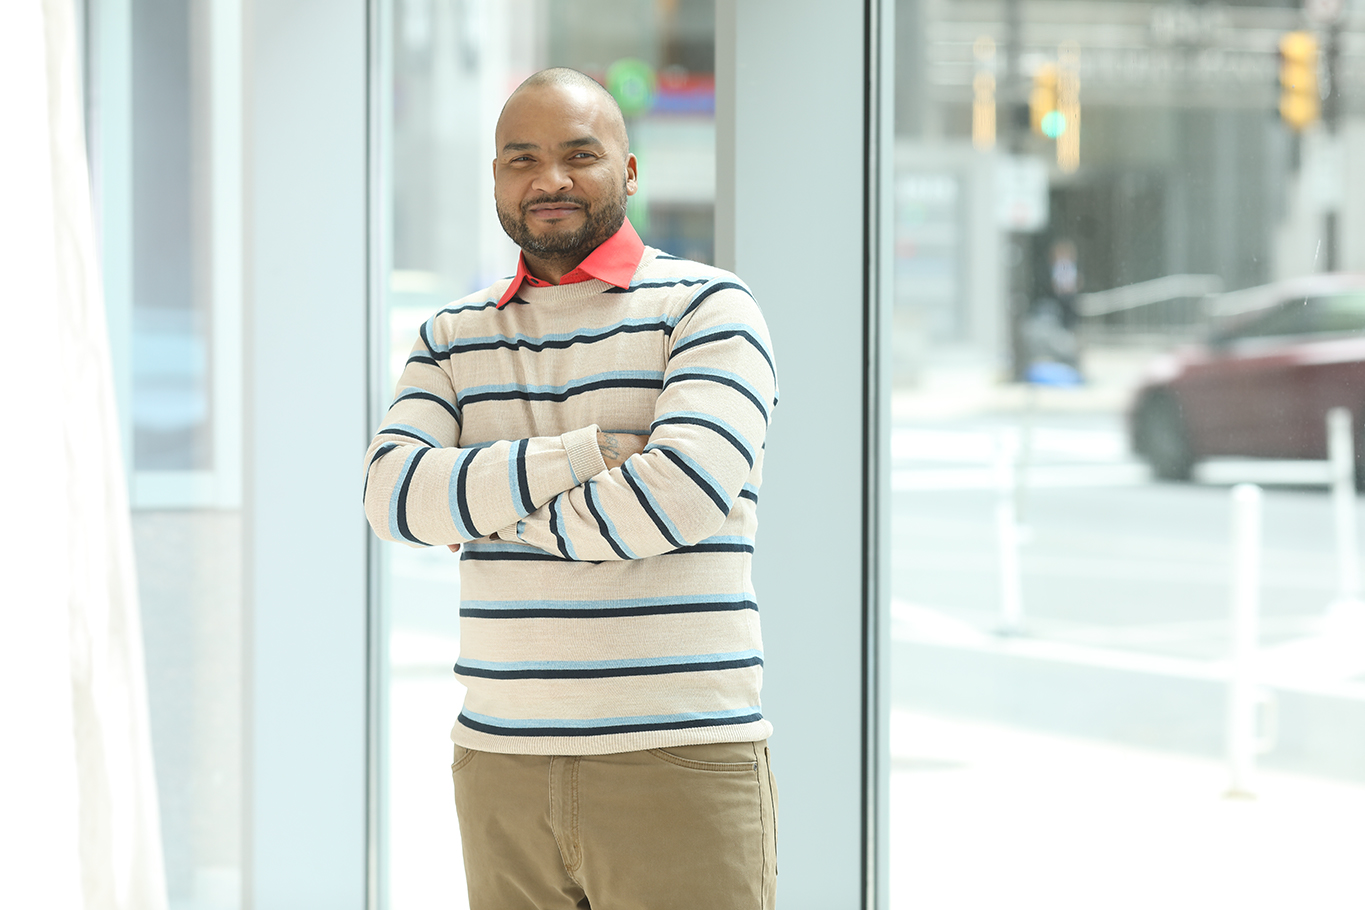 Luis Soto works as a peer recovery specialist where he engages with, listens to and supports the community.